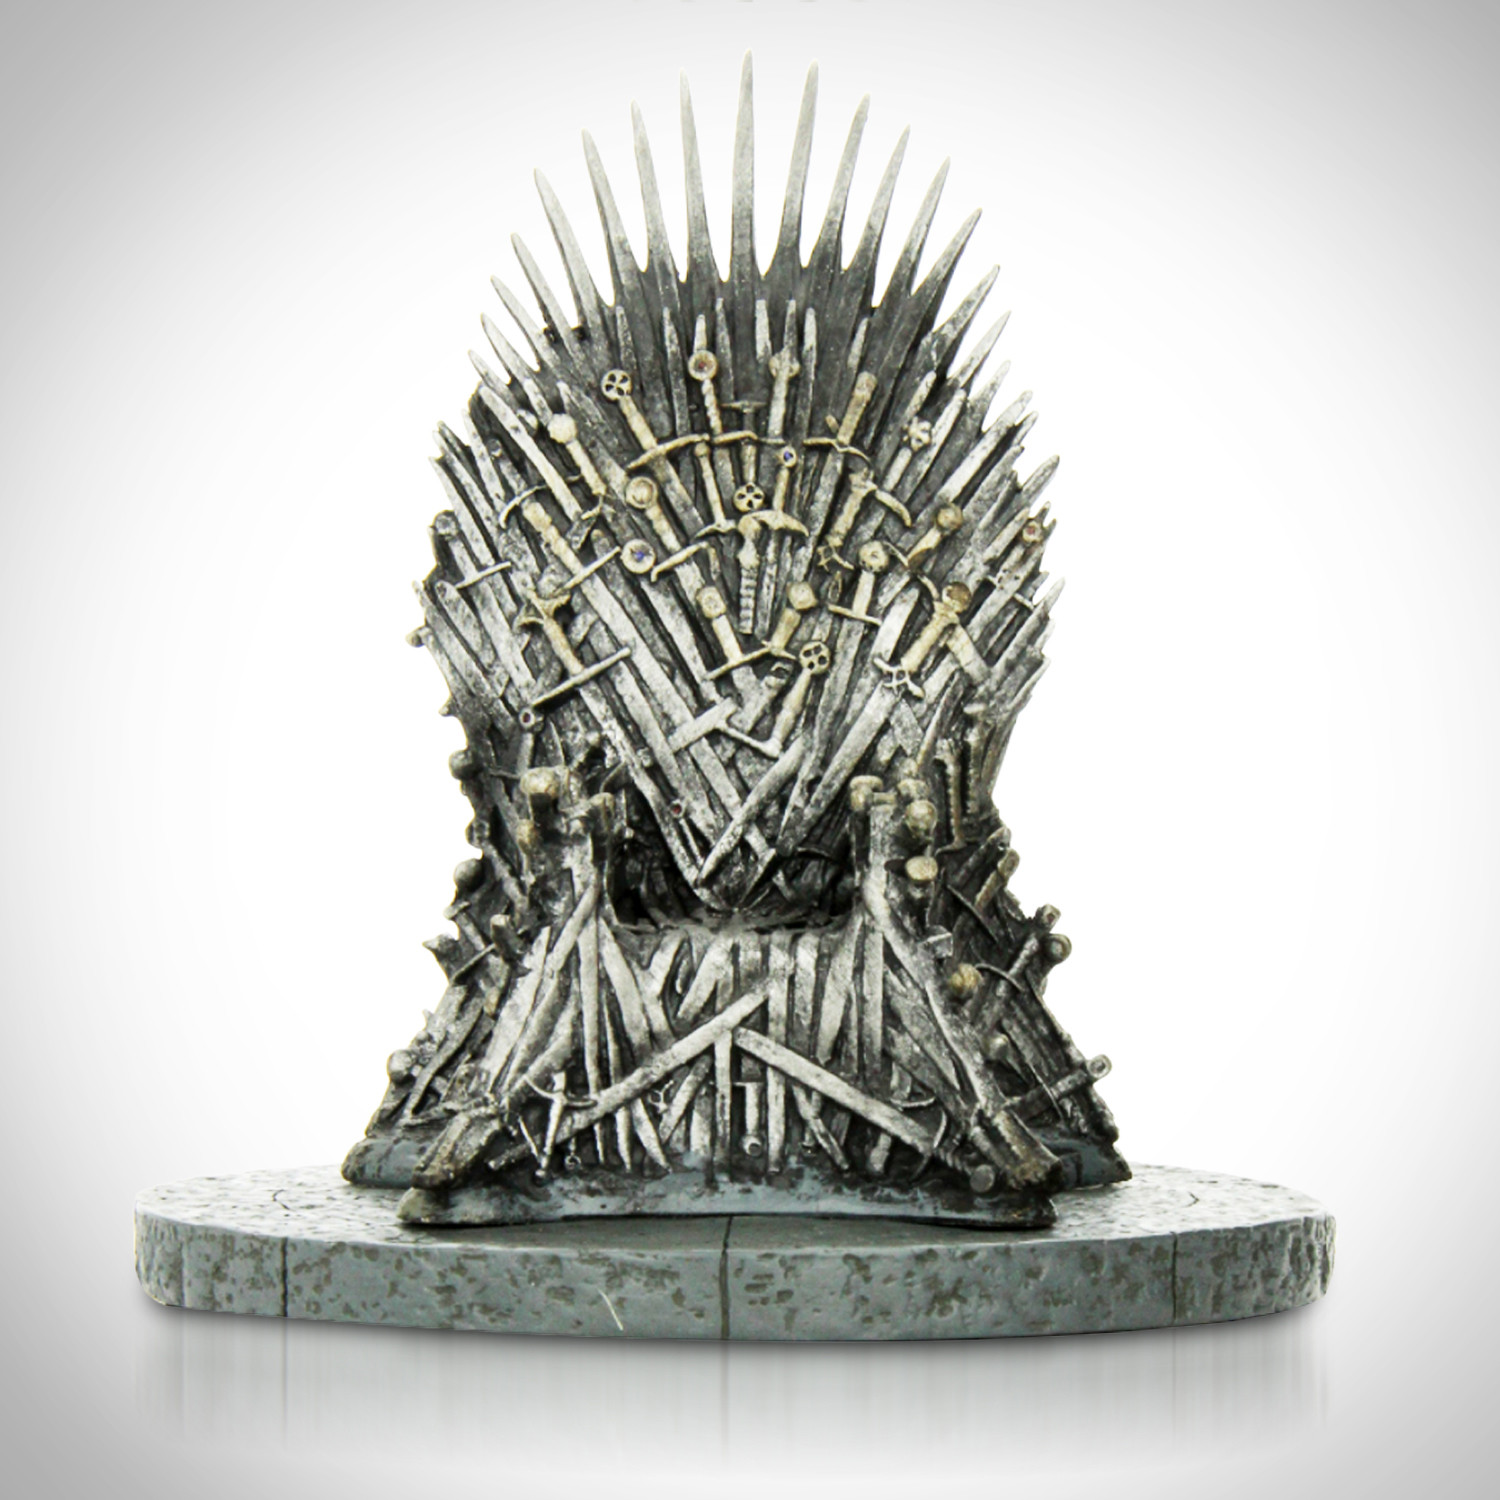 game of thrones chair for sale covers ebay.ca iron throne rare t touch modern